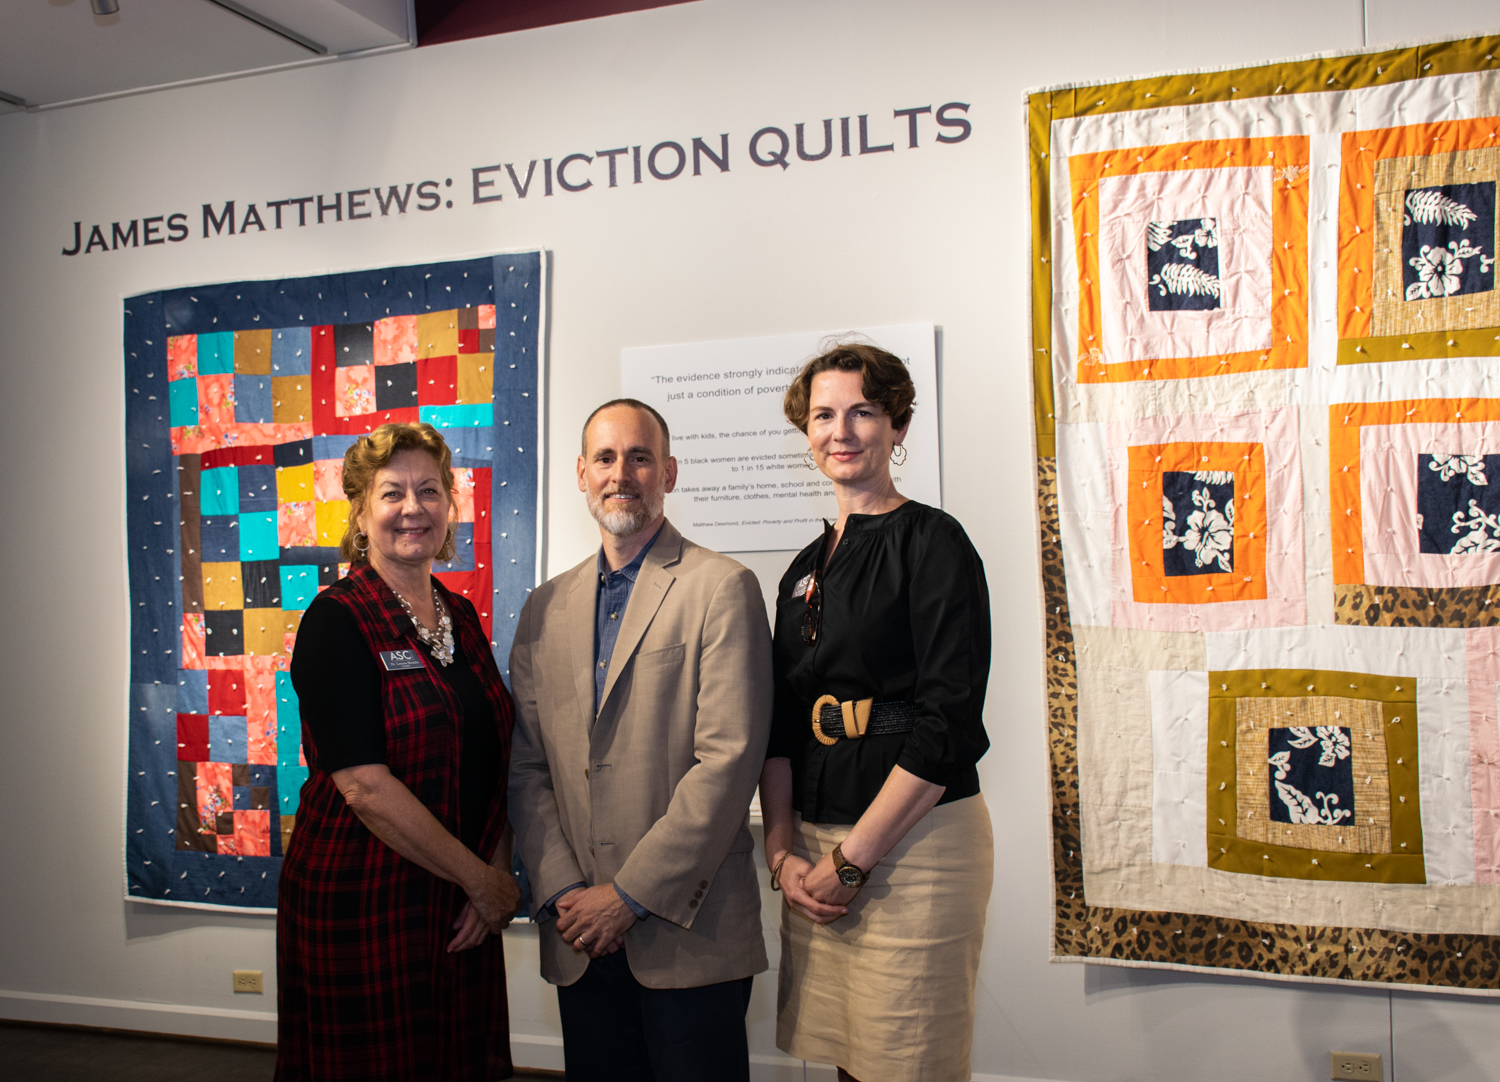 Eviction Quilts reception 2019June27 72dpi-0544.jpg